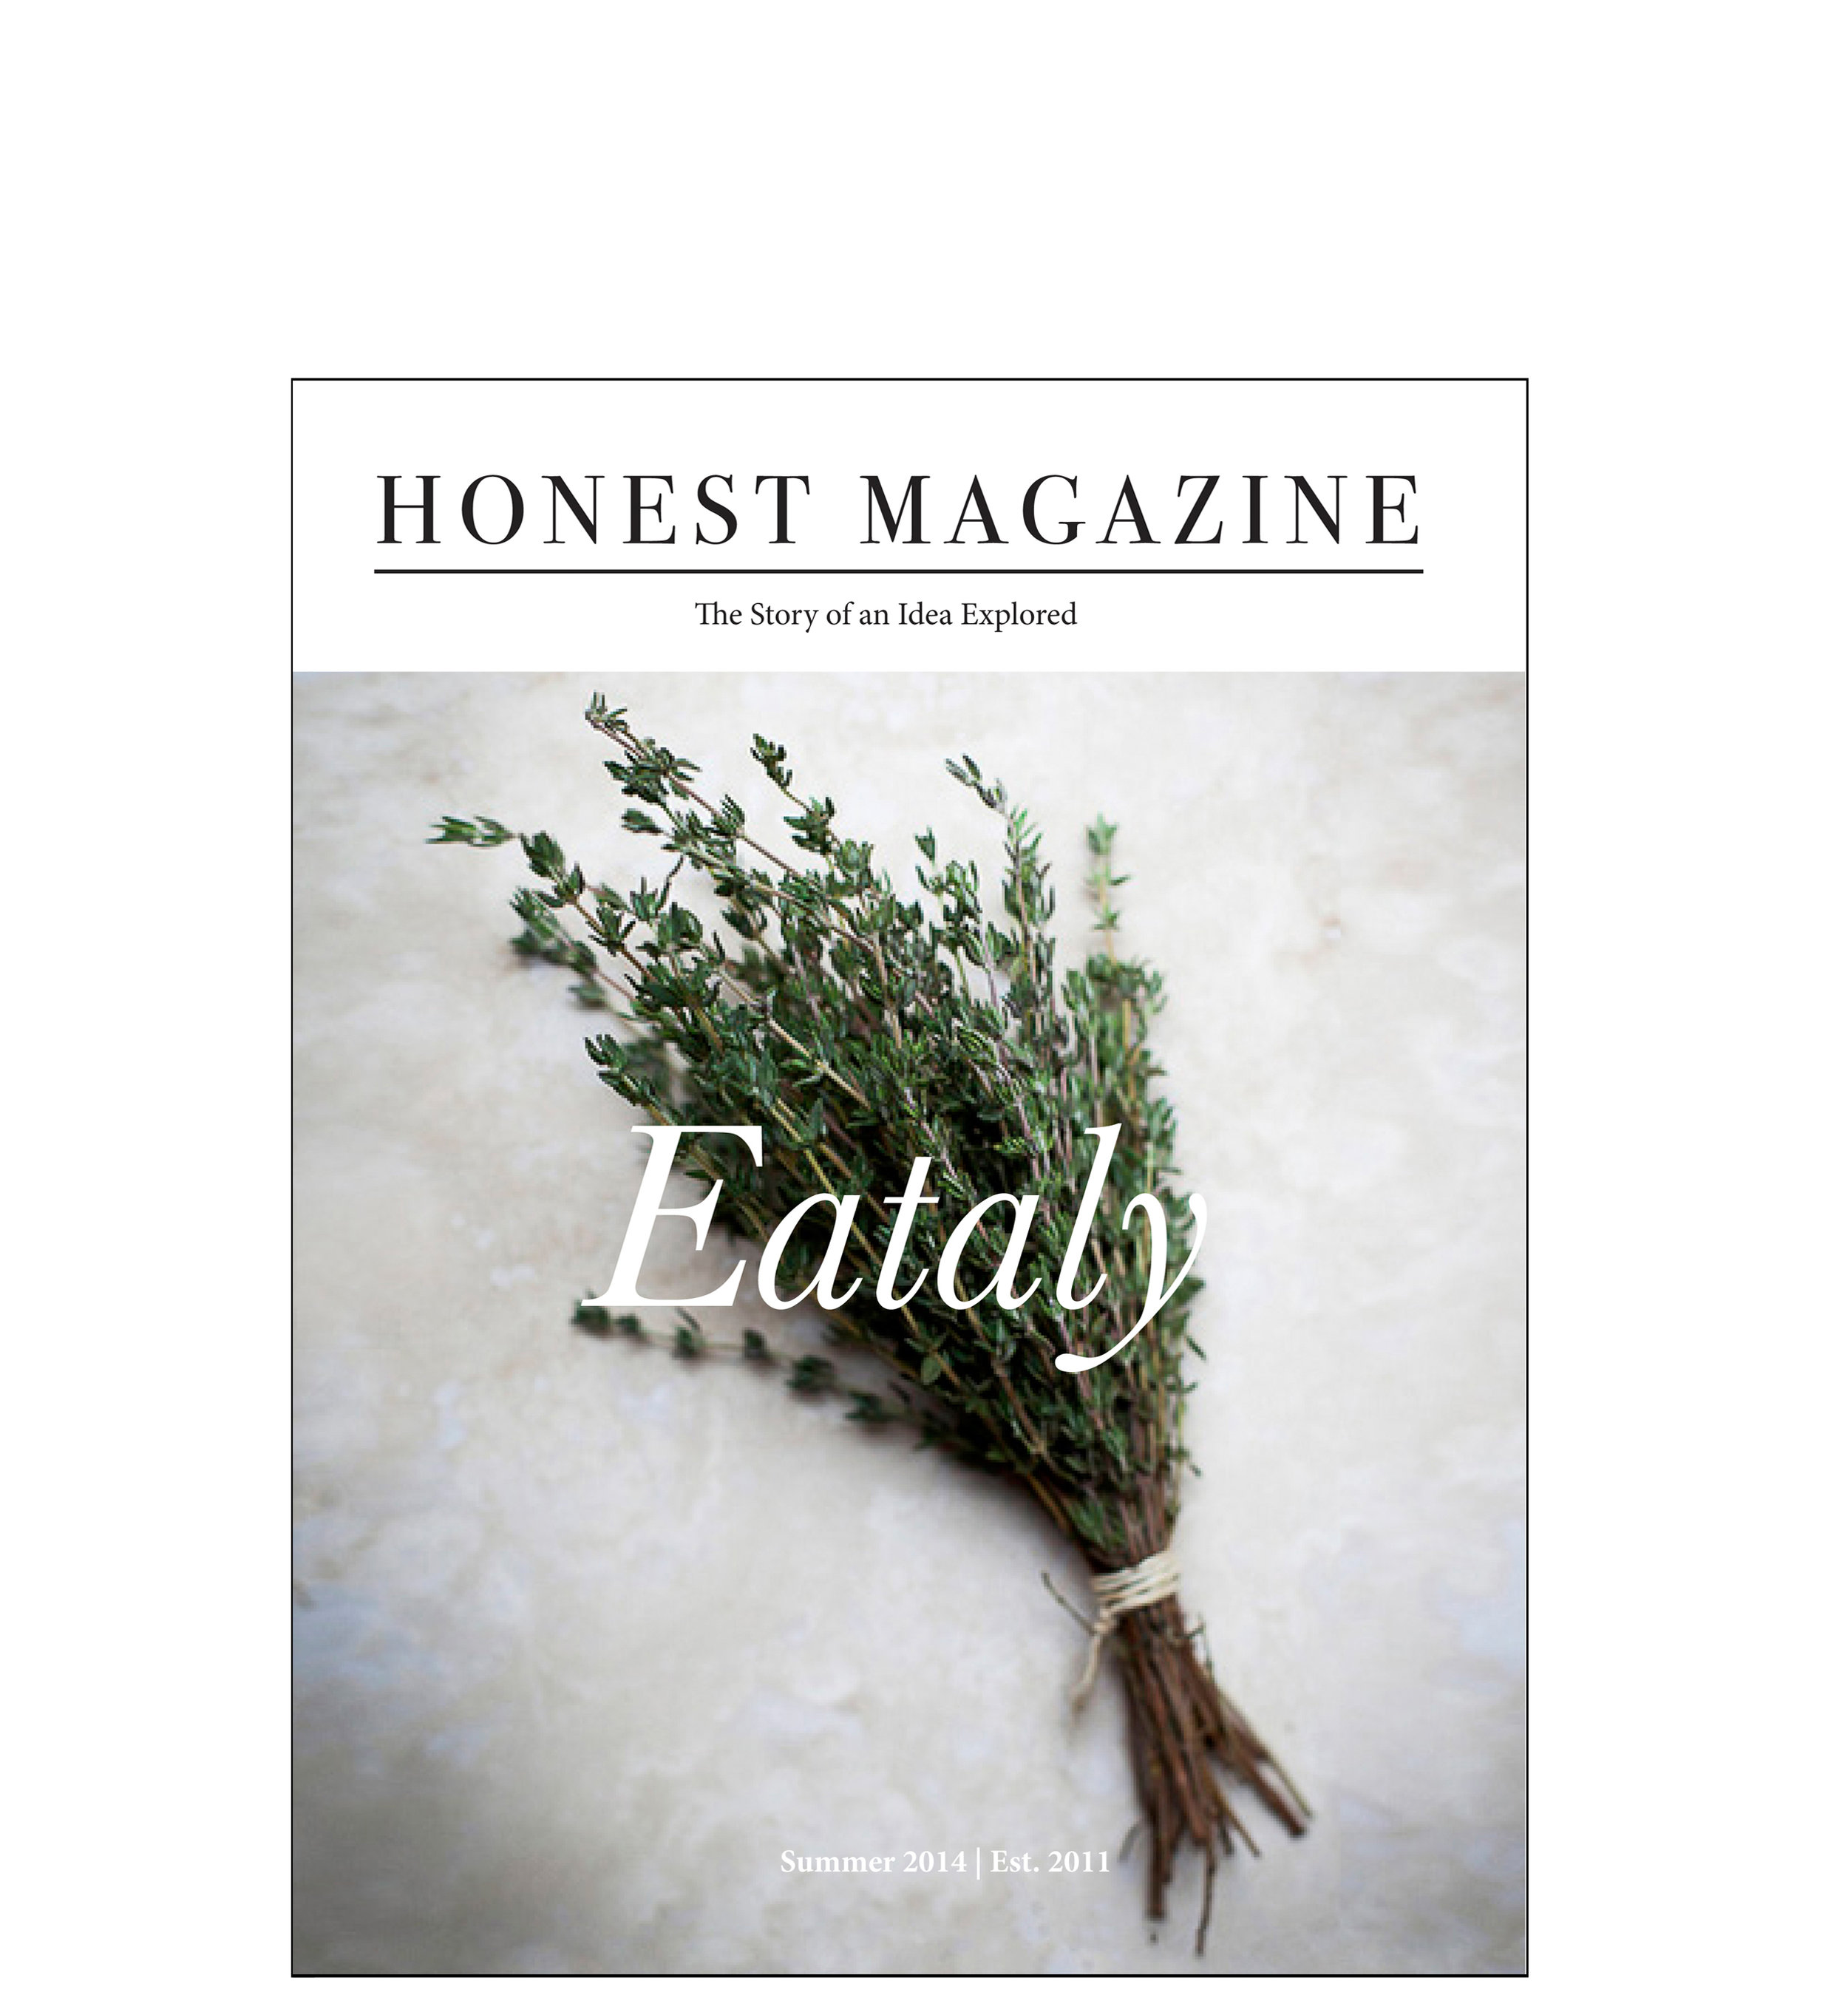 Eataly_Issue_Cover copy.jpg